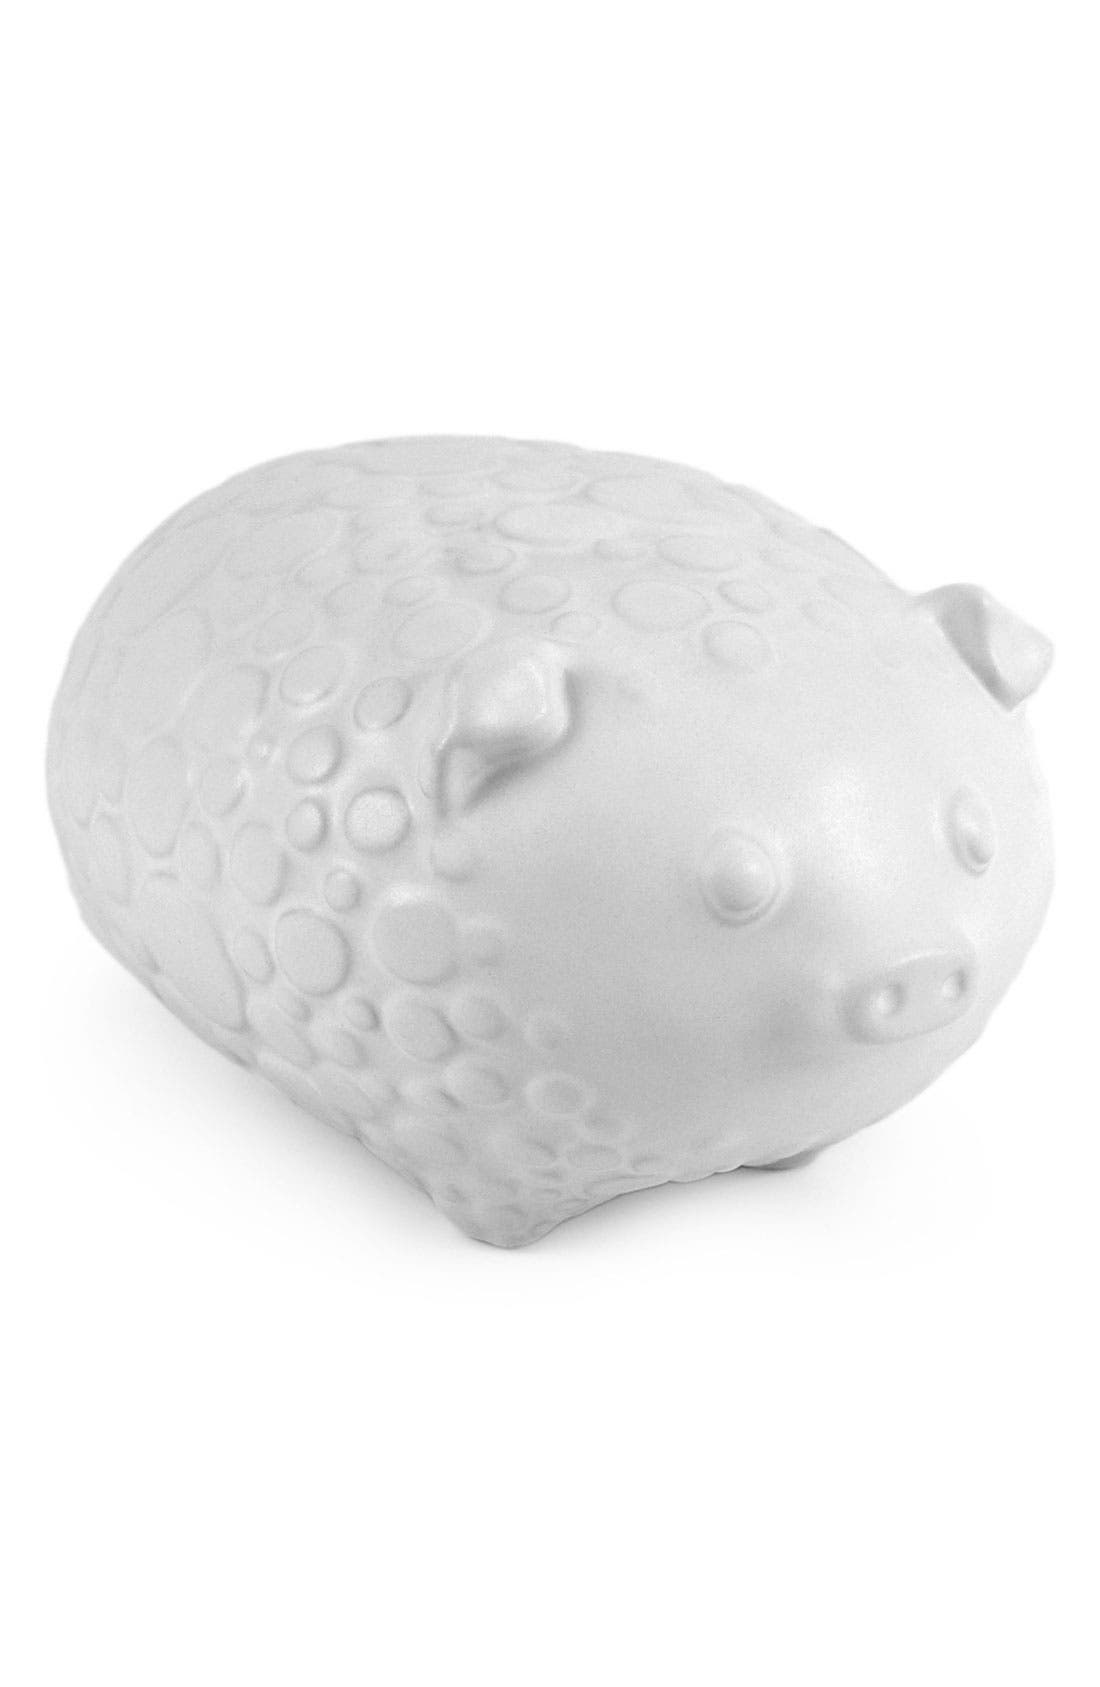 Alternate Image 1 Selected - Jonathan Adler Ceramic Pig